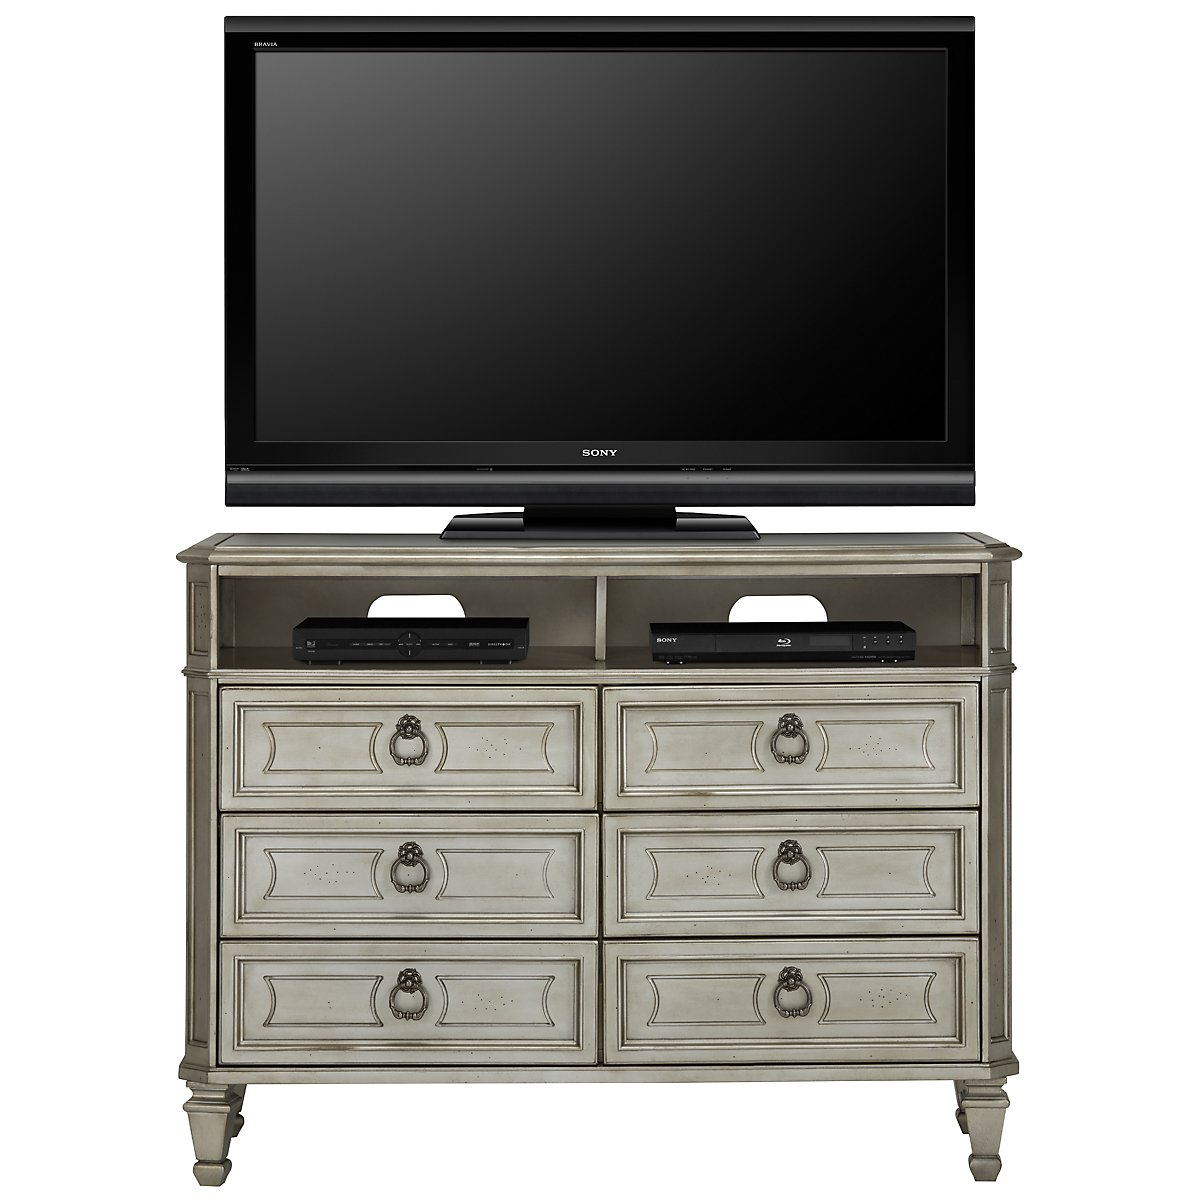 Sloane Silver Media Chest. City Furniture   Bedroom Furniture   Media Chests  Armoires